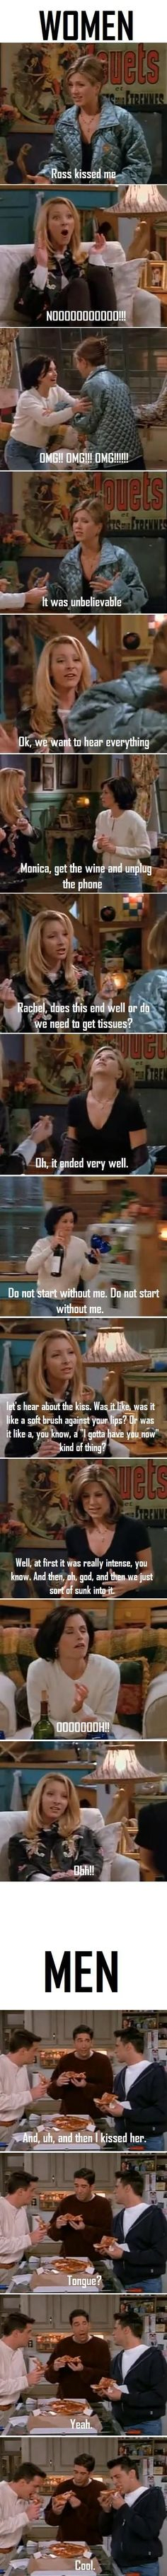 I love friends! haha